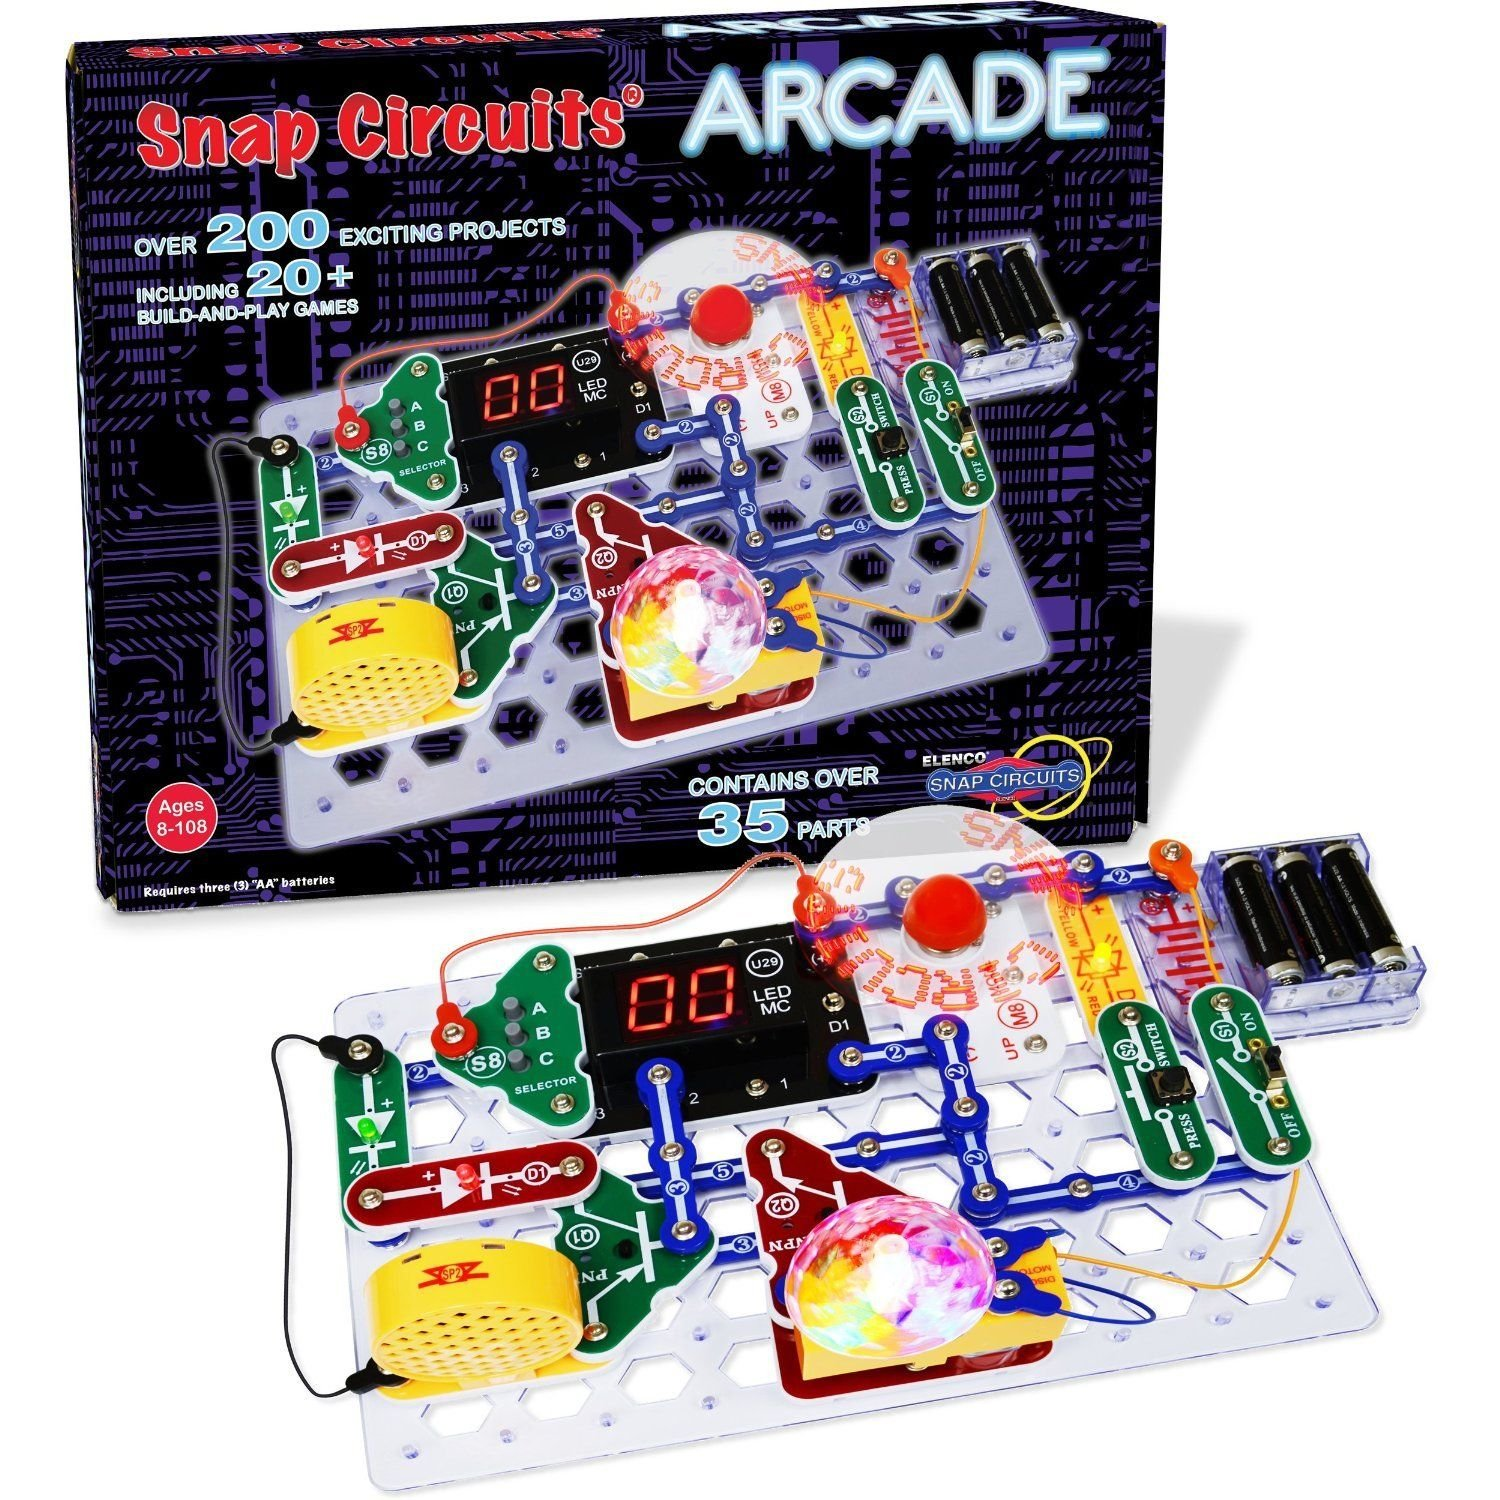 Snap Circuits Arcade Electronics Discovery Kit Steam Home Electromagnetism Stem Concepts 200 Projects Toys Games